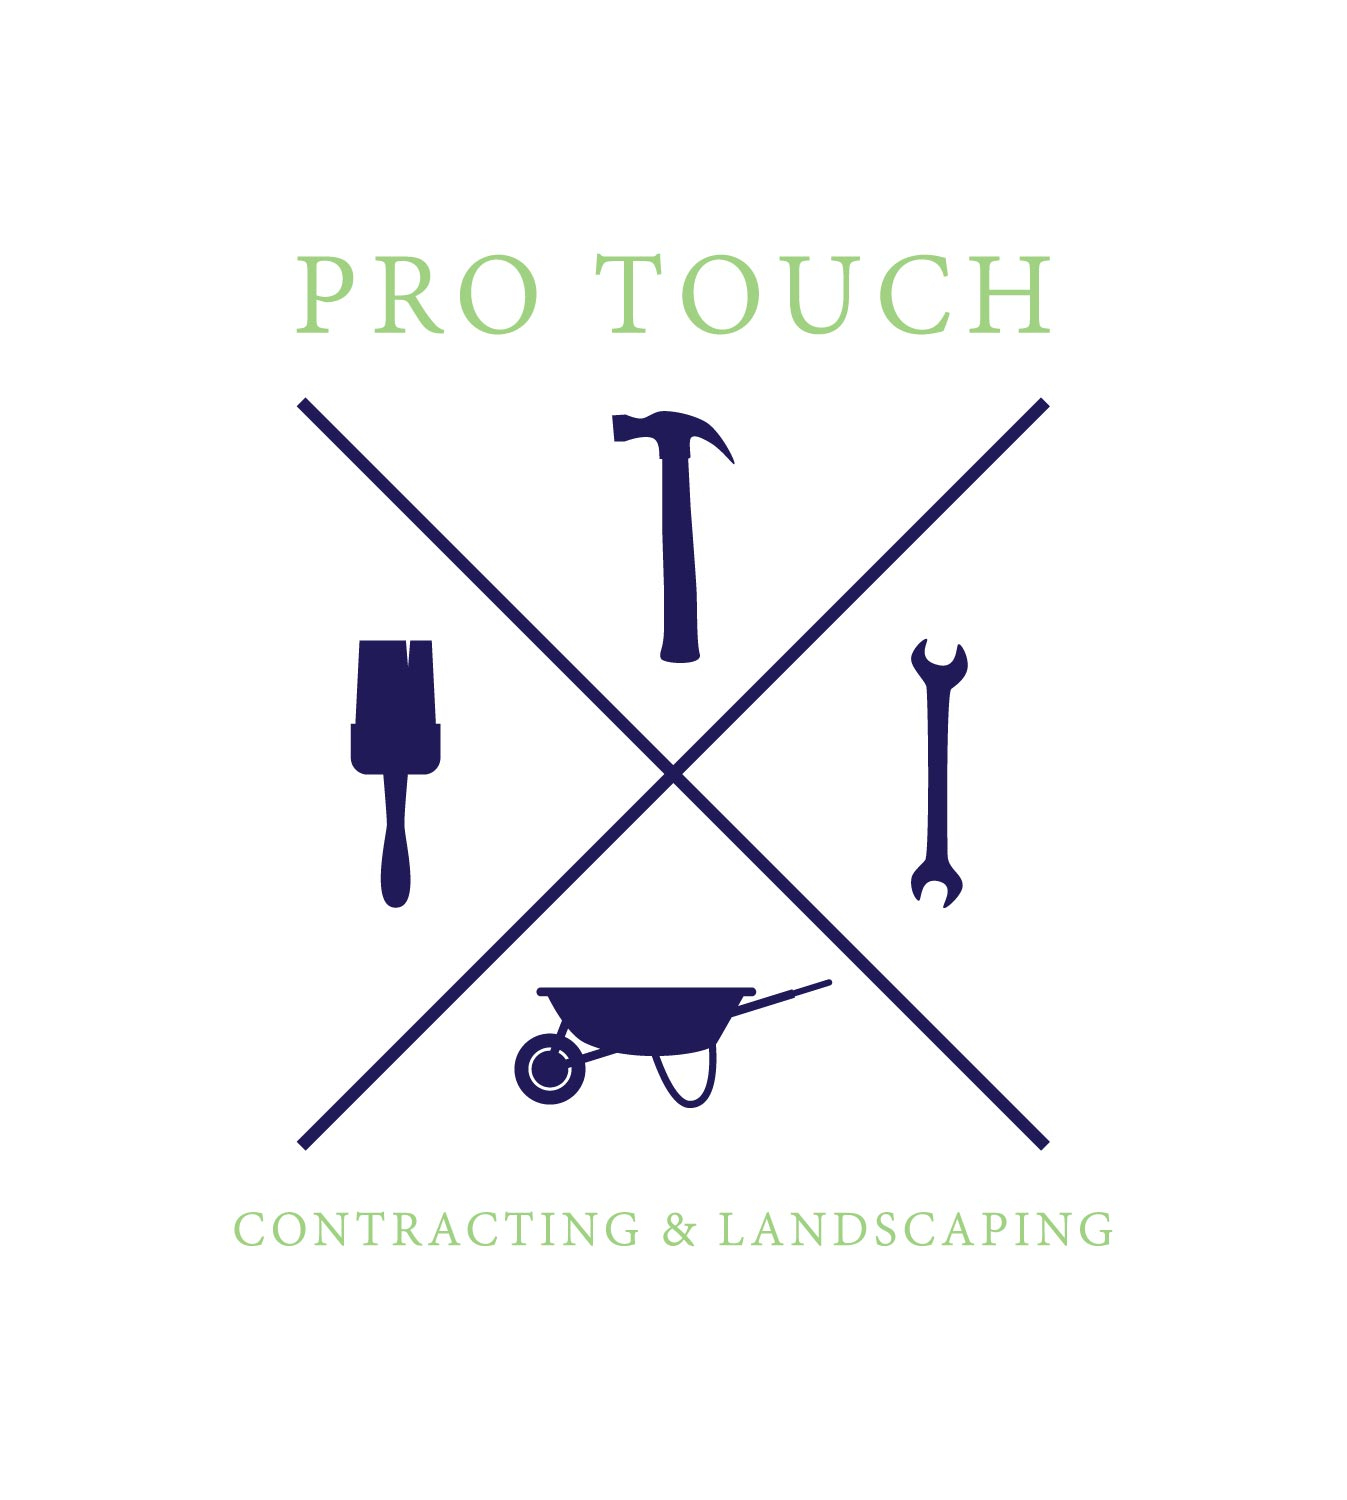 Pro Touch Contracting & Landscaping-01.jpg